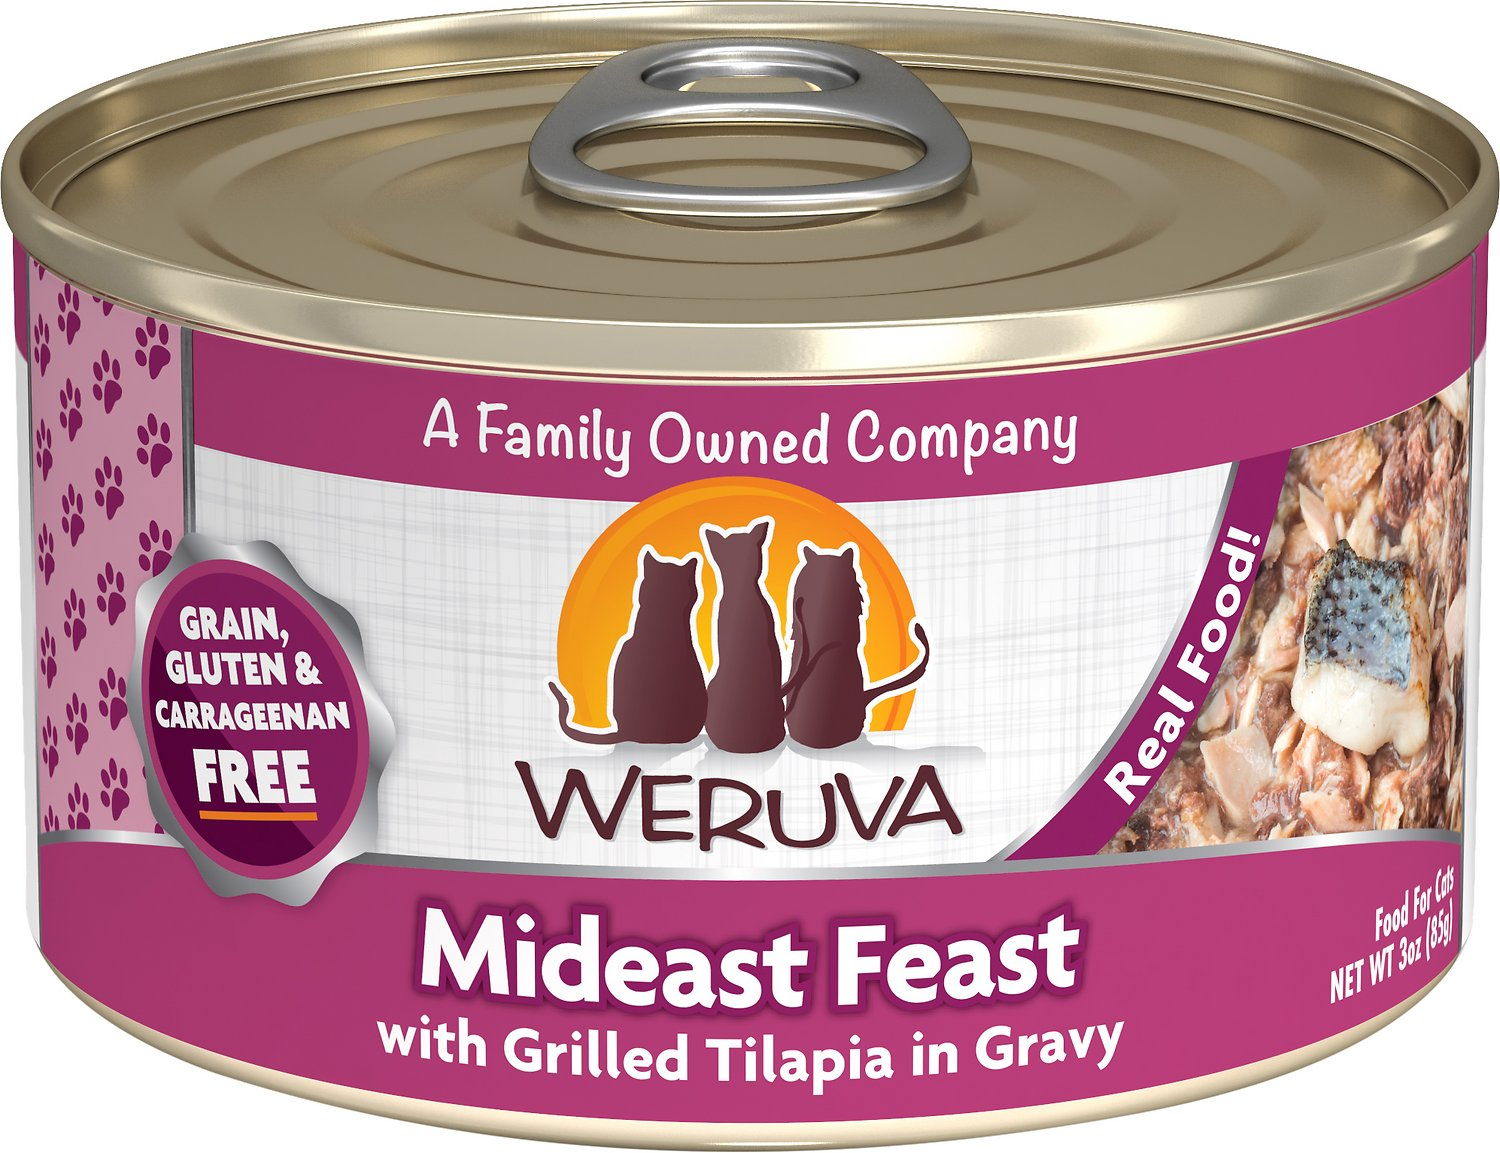 Weruva Cat Classic Mideast Feast with Grilled Tilapia in Gravy Grain-Free Wet Cat Food, 3-oz